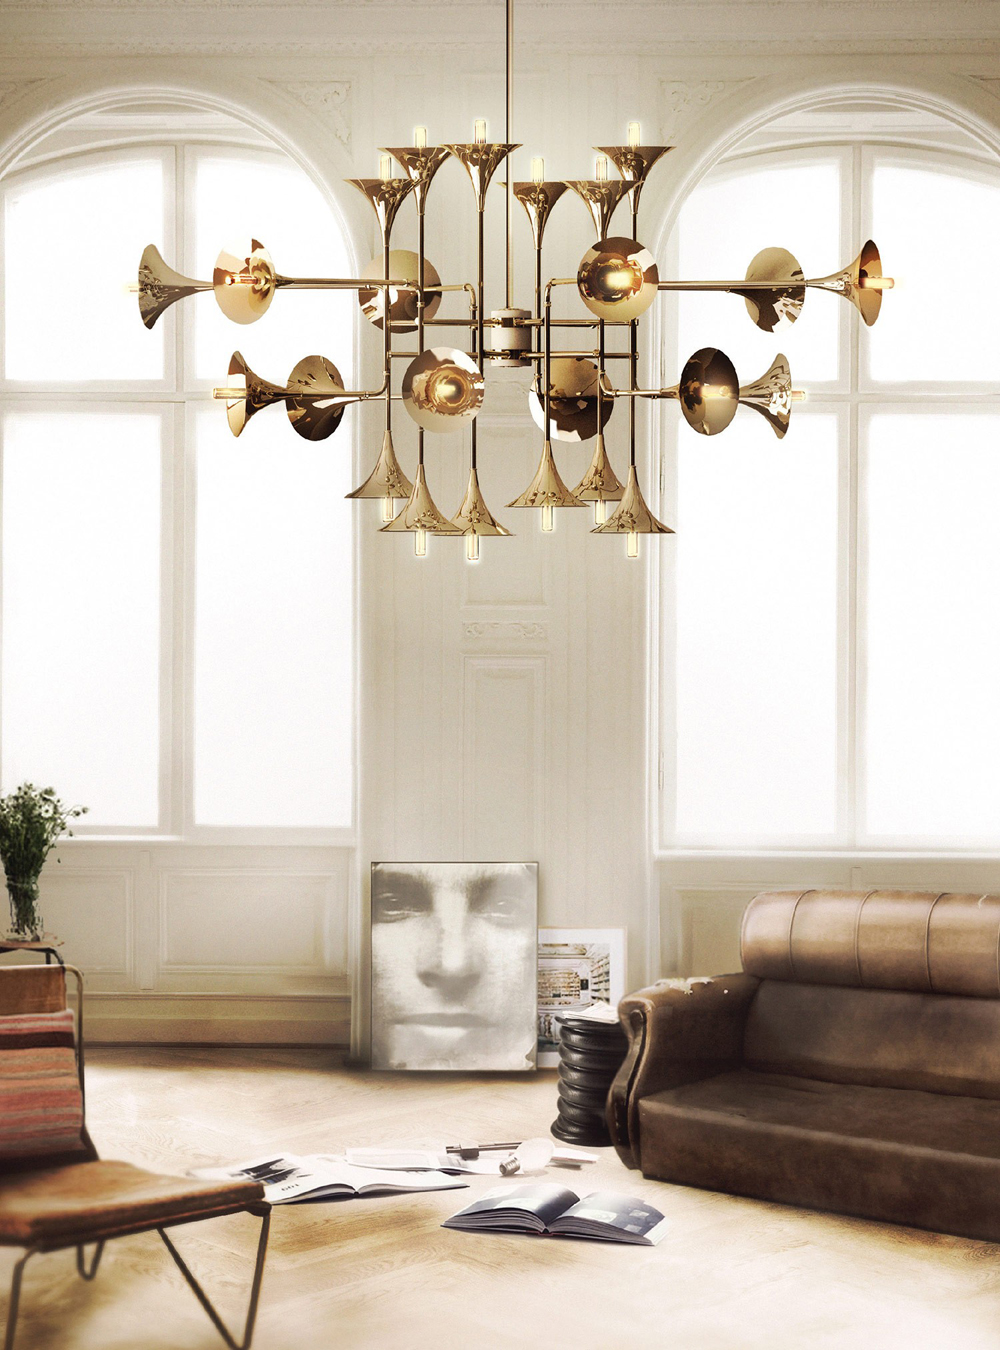 botti-unique-ceiling-lamp-01.jpg